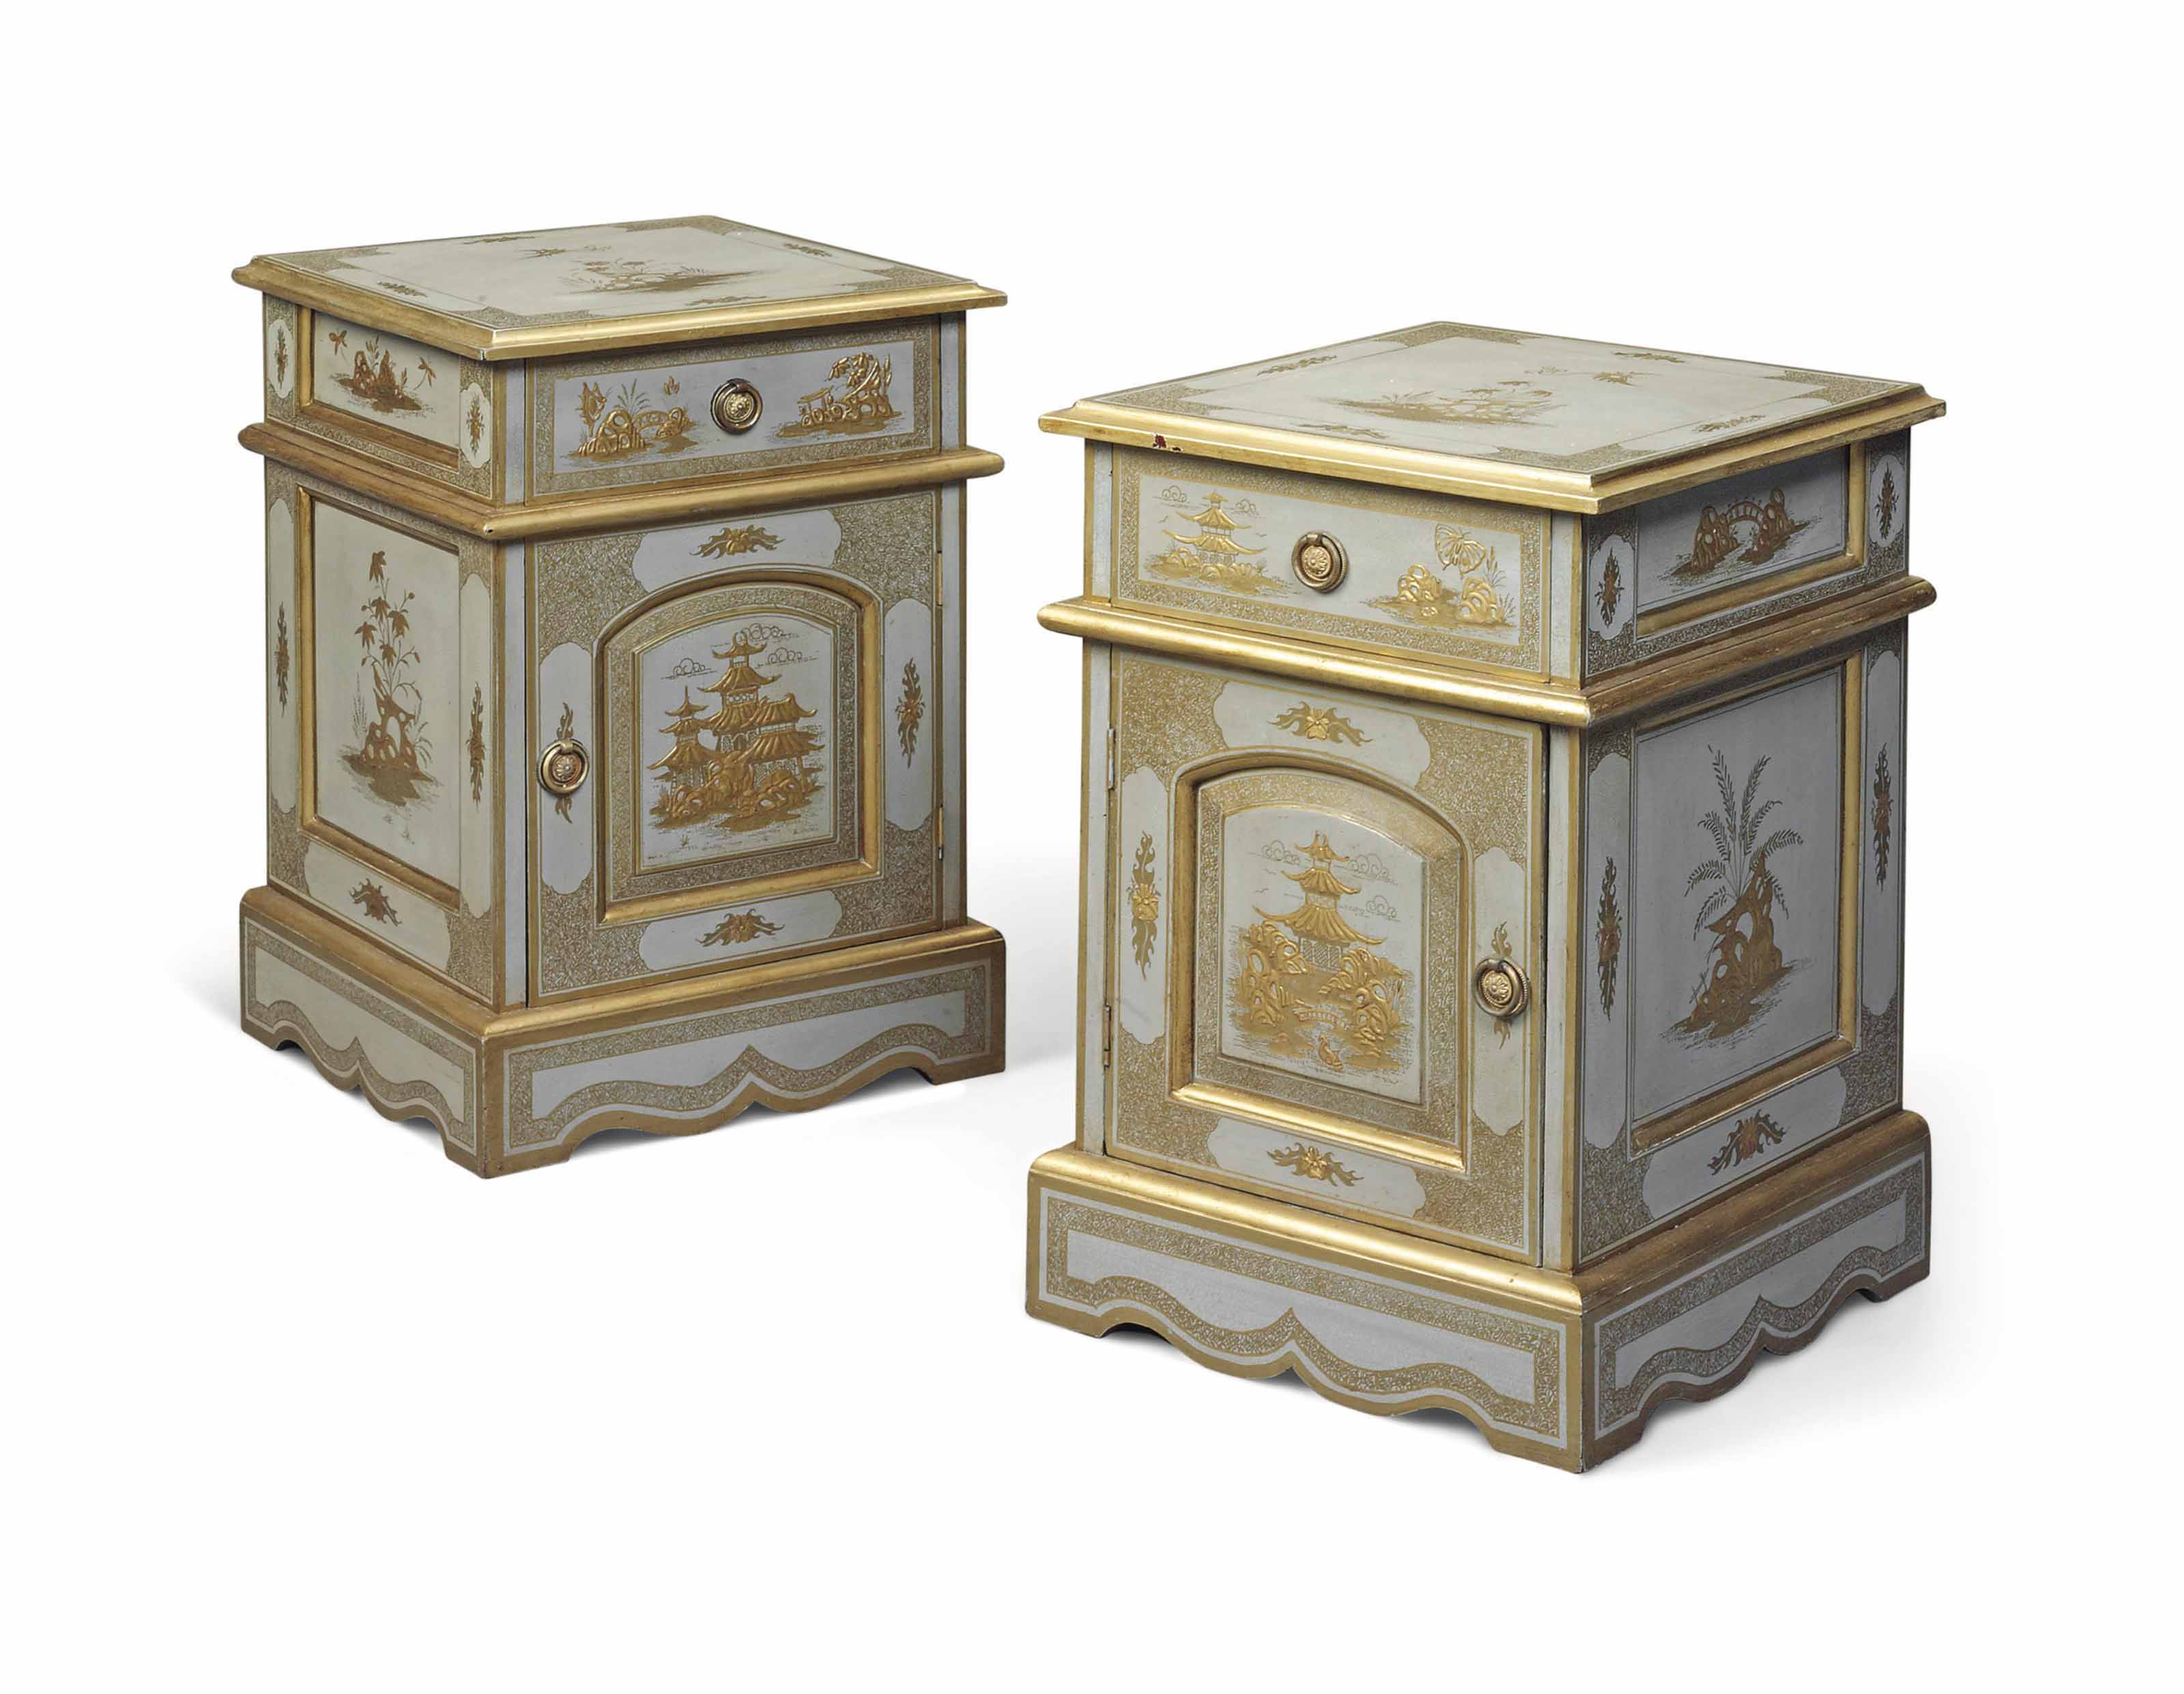 A PAIR OF JAPANNED BEDSIDE CAB